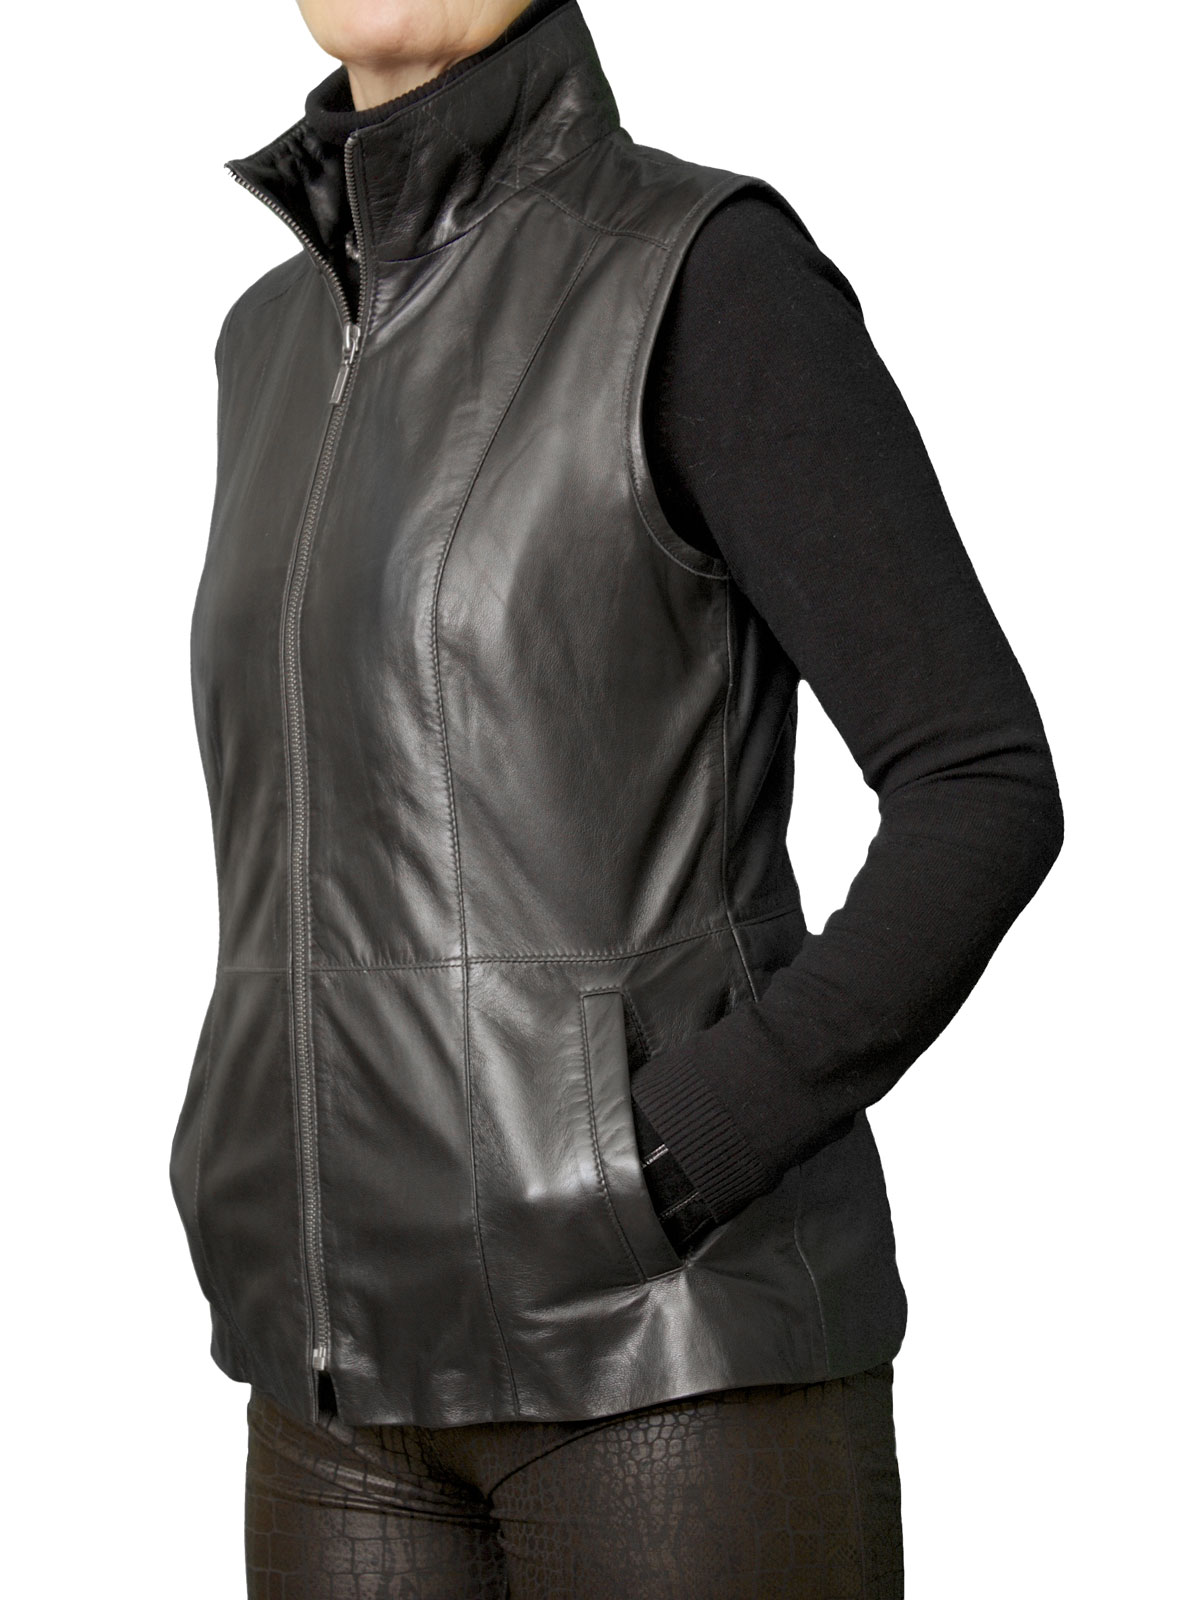 Ladies Black Leather Gilet with stand-up collar